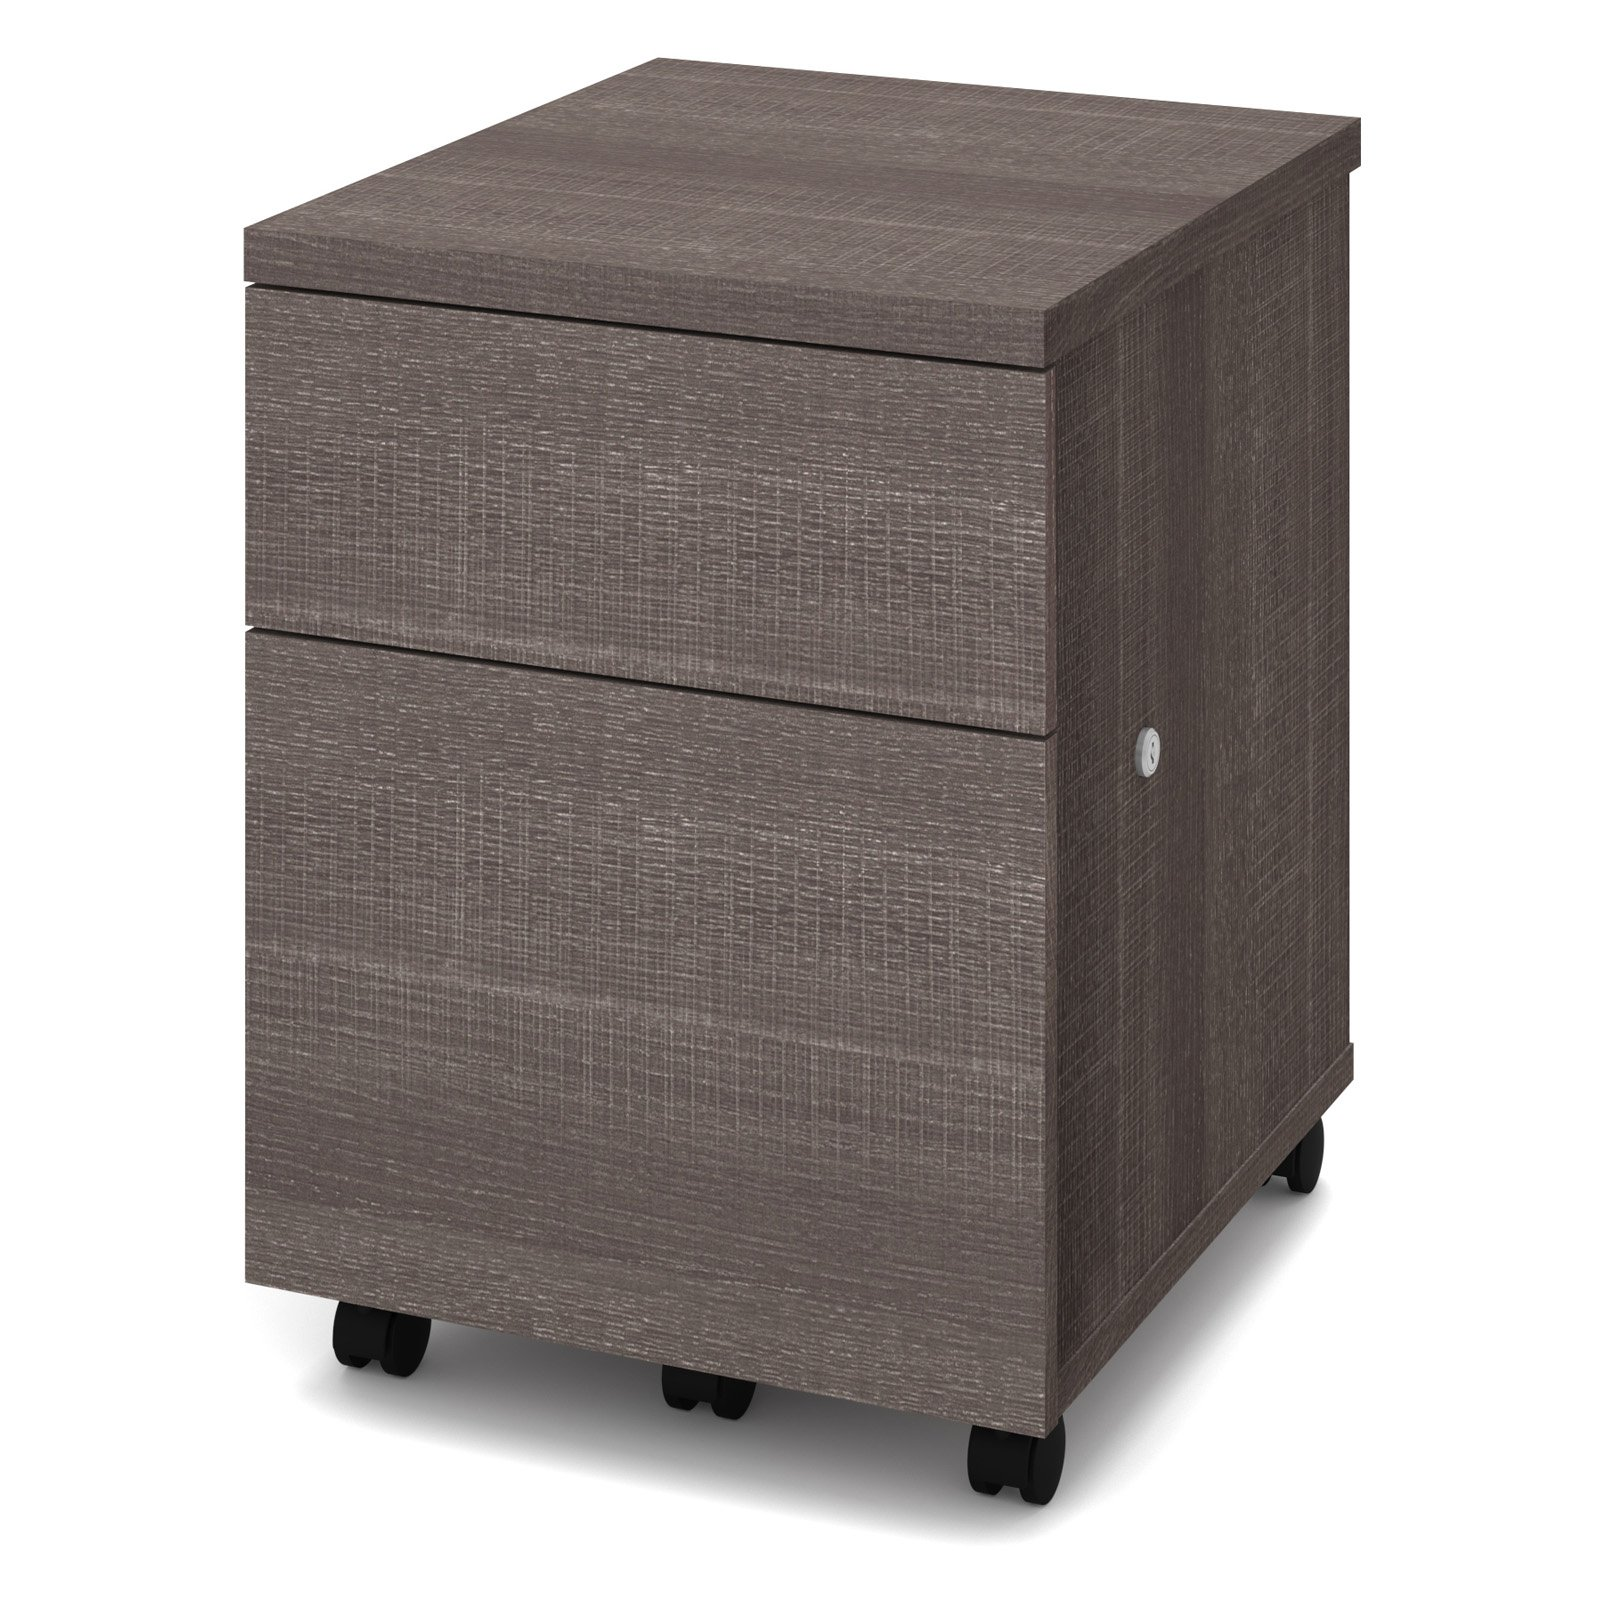 Bestar 2 Drawer Vertical Wood Lockable FileCabinet, Gray by Bestar